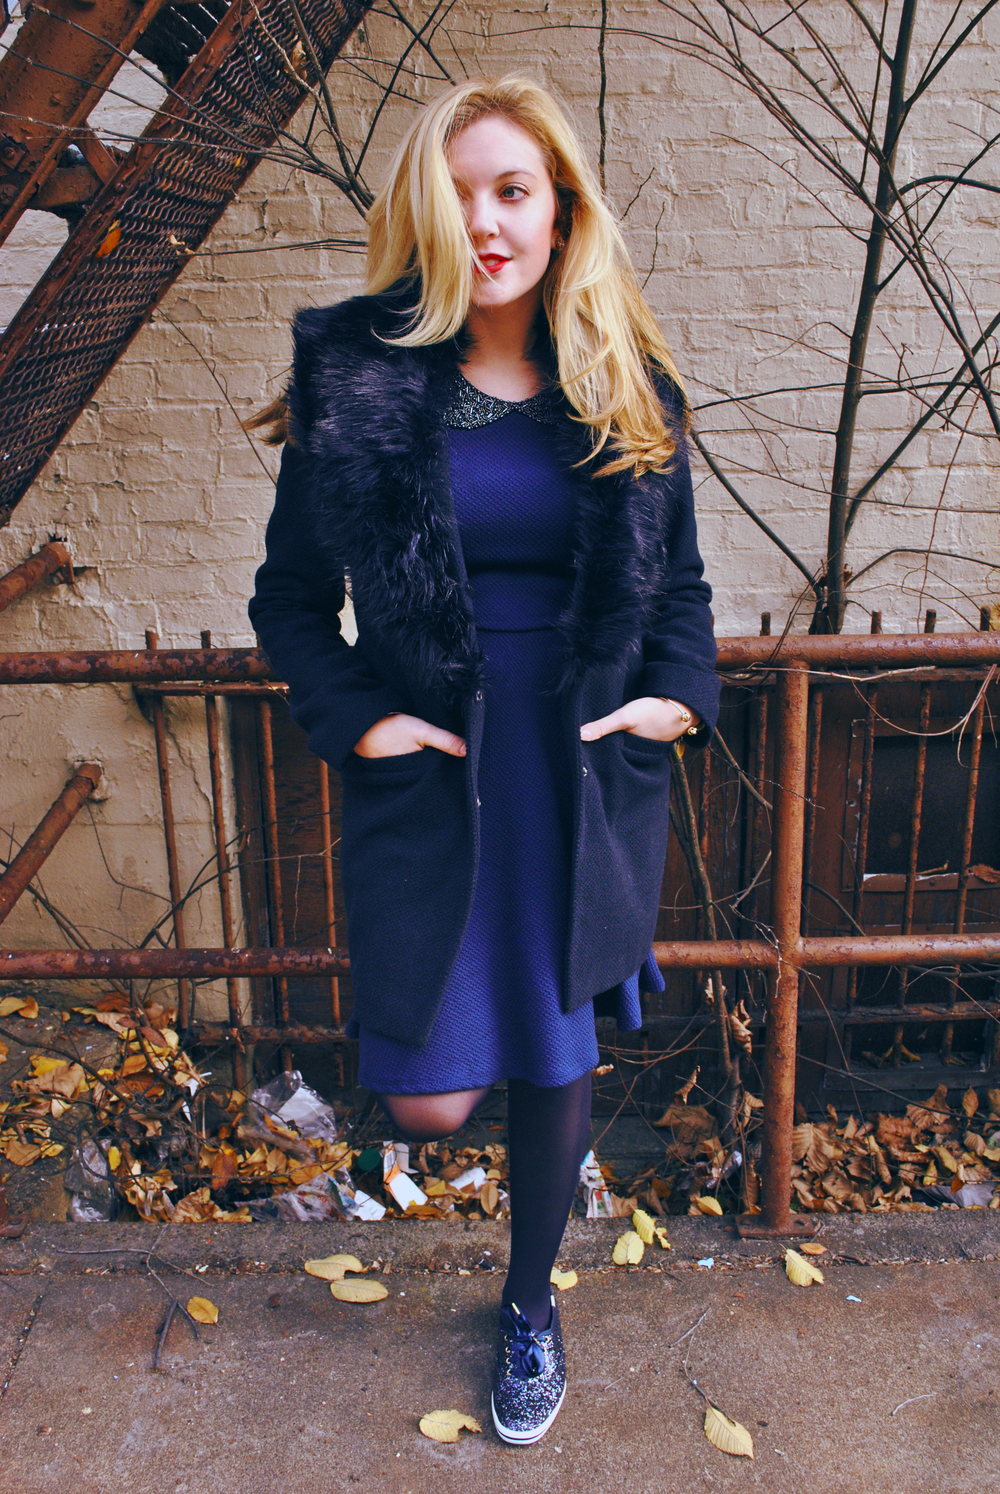 thoughtfulwish | preppy outfit // boston fashion // new england fashion // preppy // faux fur // navy dress // kate spade // primark boston // scream queens fashion // boston fashion blogger